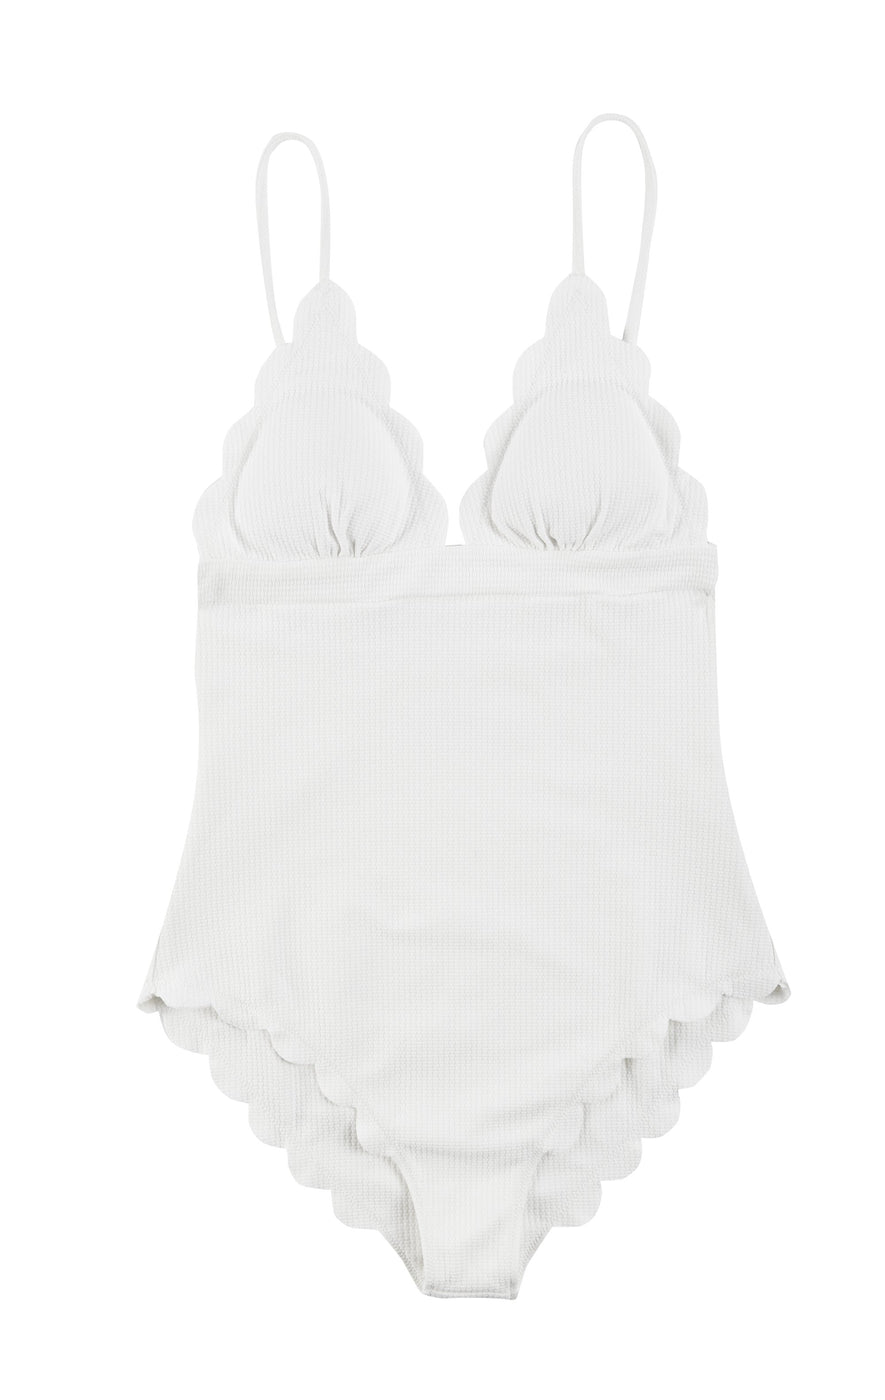 A white one piece swimsuit in a luxurious fabric, featuring a signature scallop trim